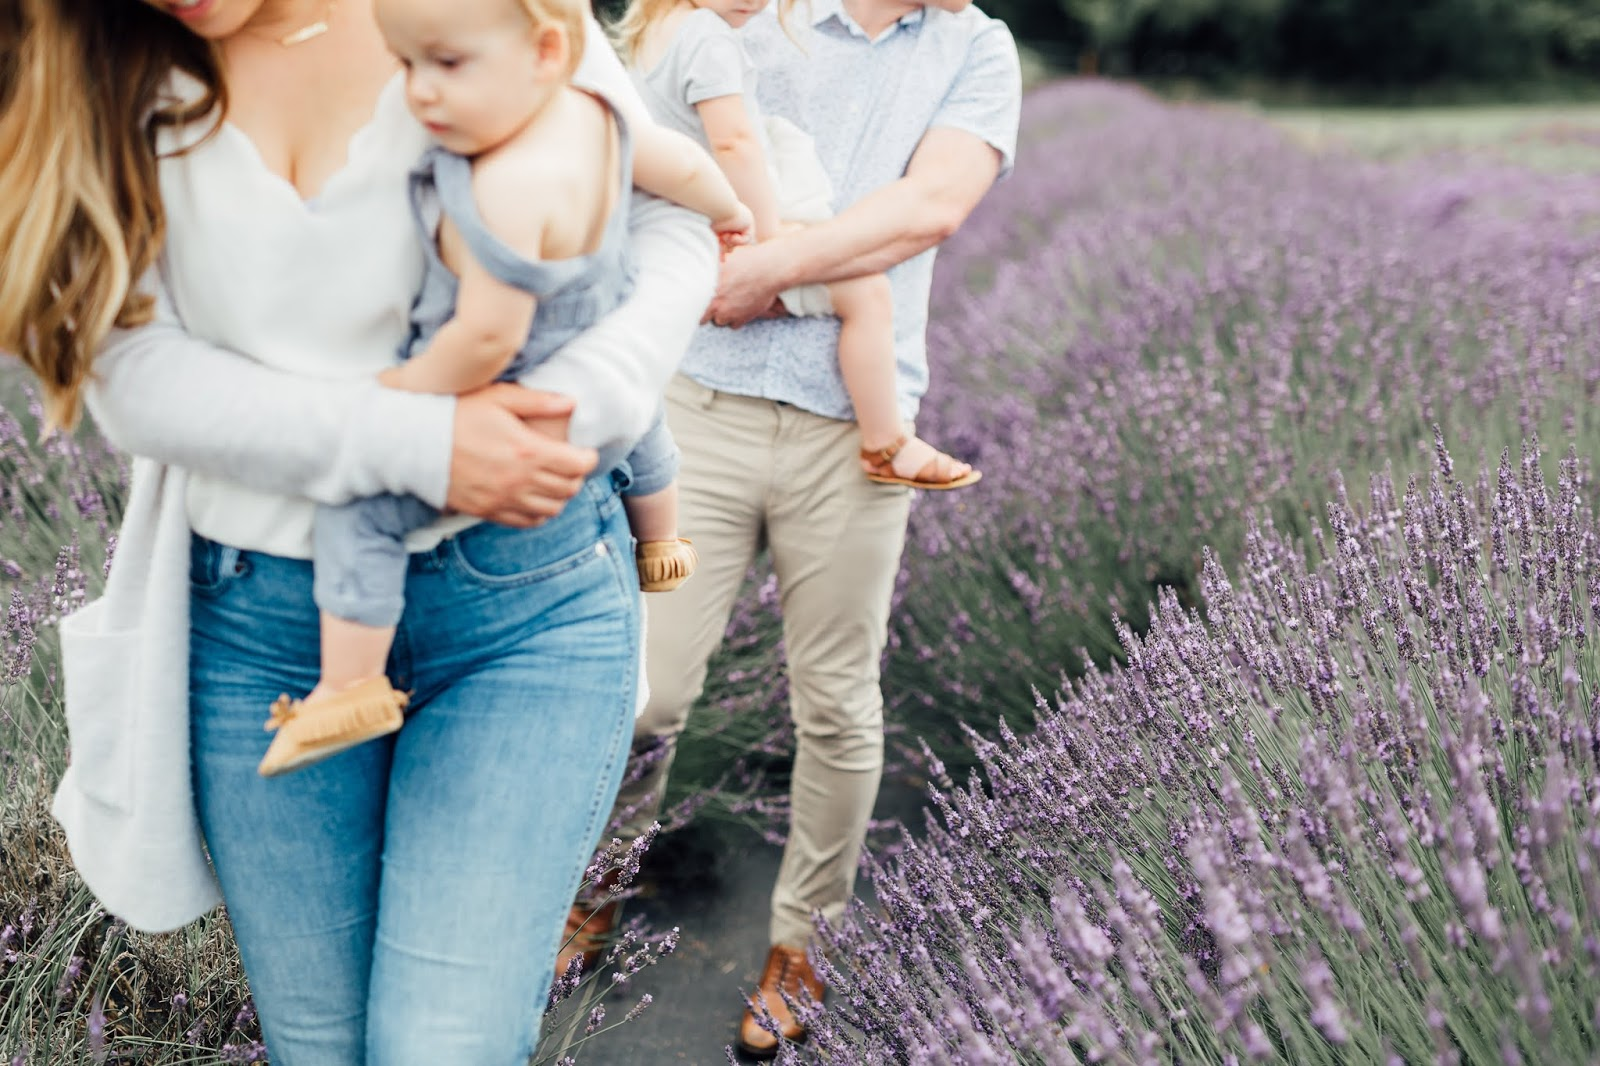 Lavender Field Photography Session-PNW Photographers-Woodinville Lavender Wedding